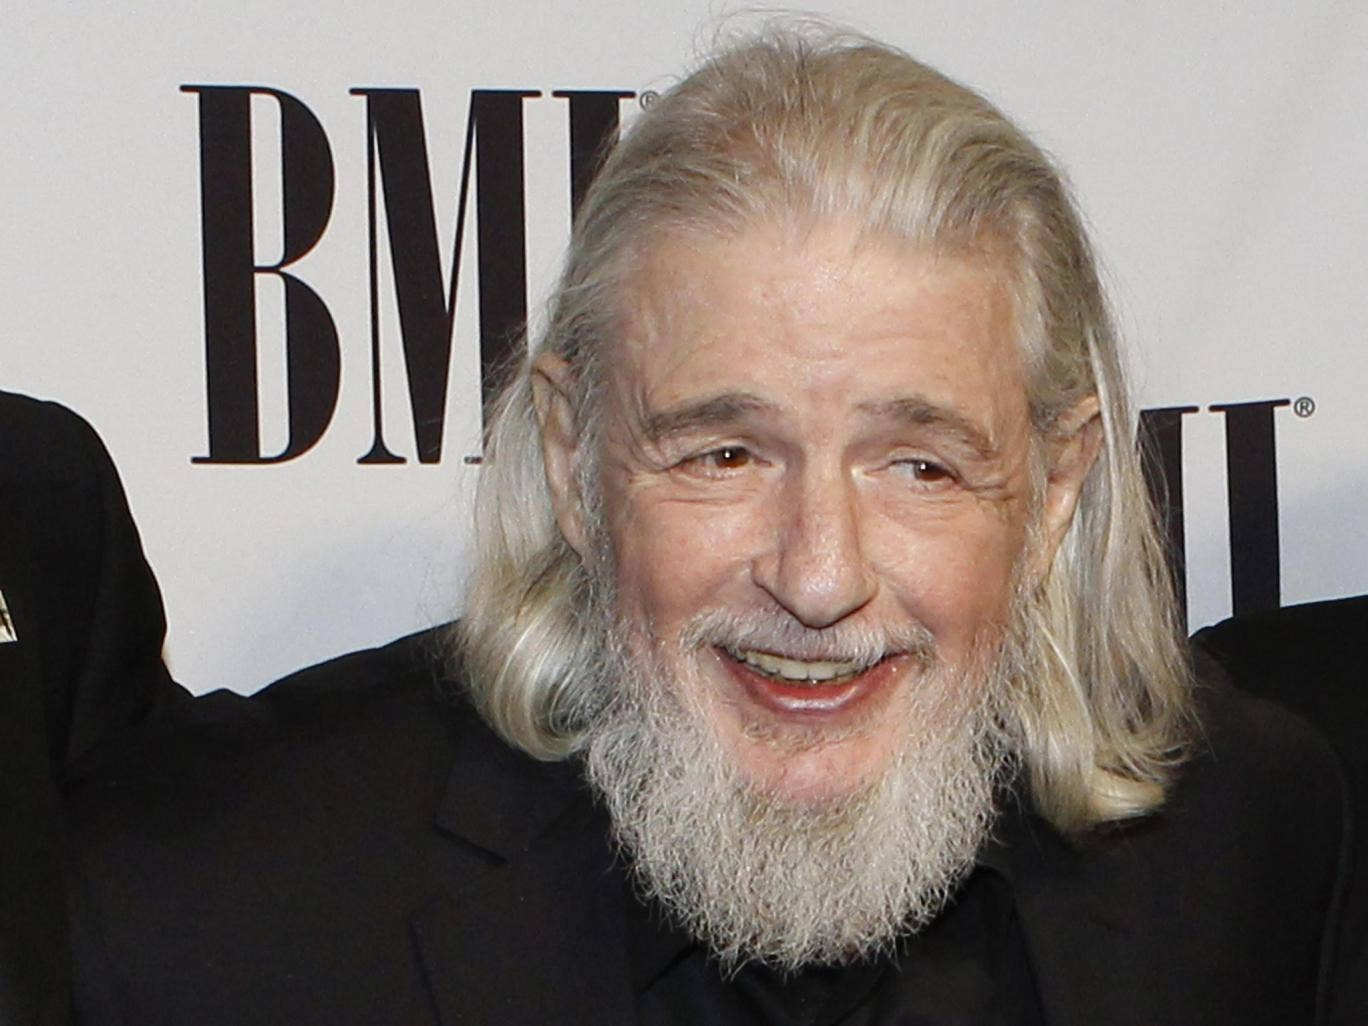 Lyricist Gerry Goffin, who co-wrote some of the biggest hit songs of the 1960s has died